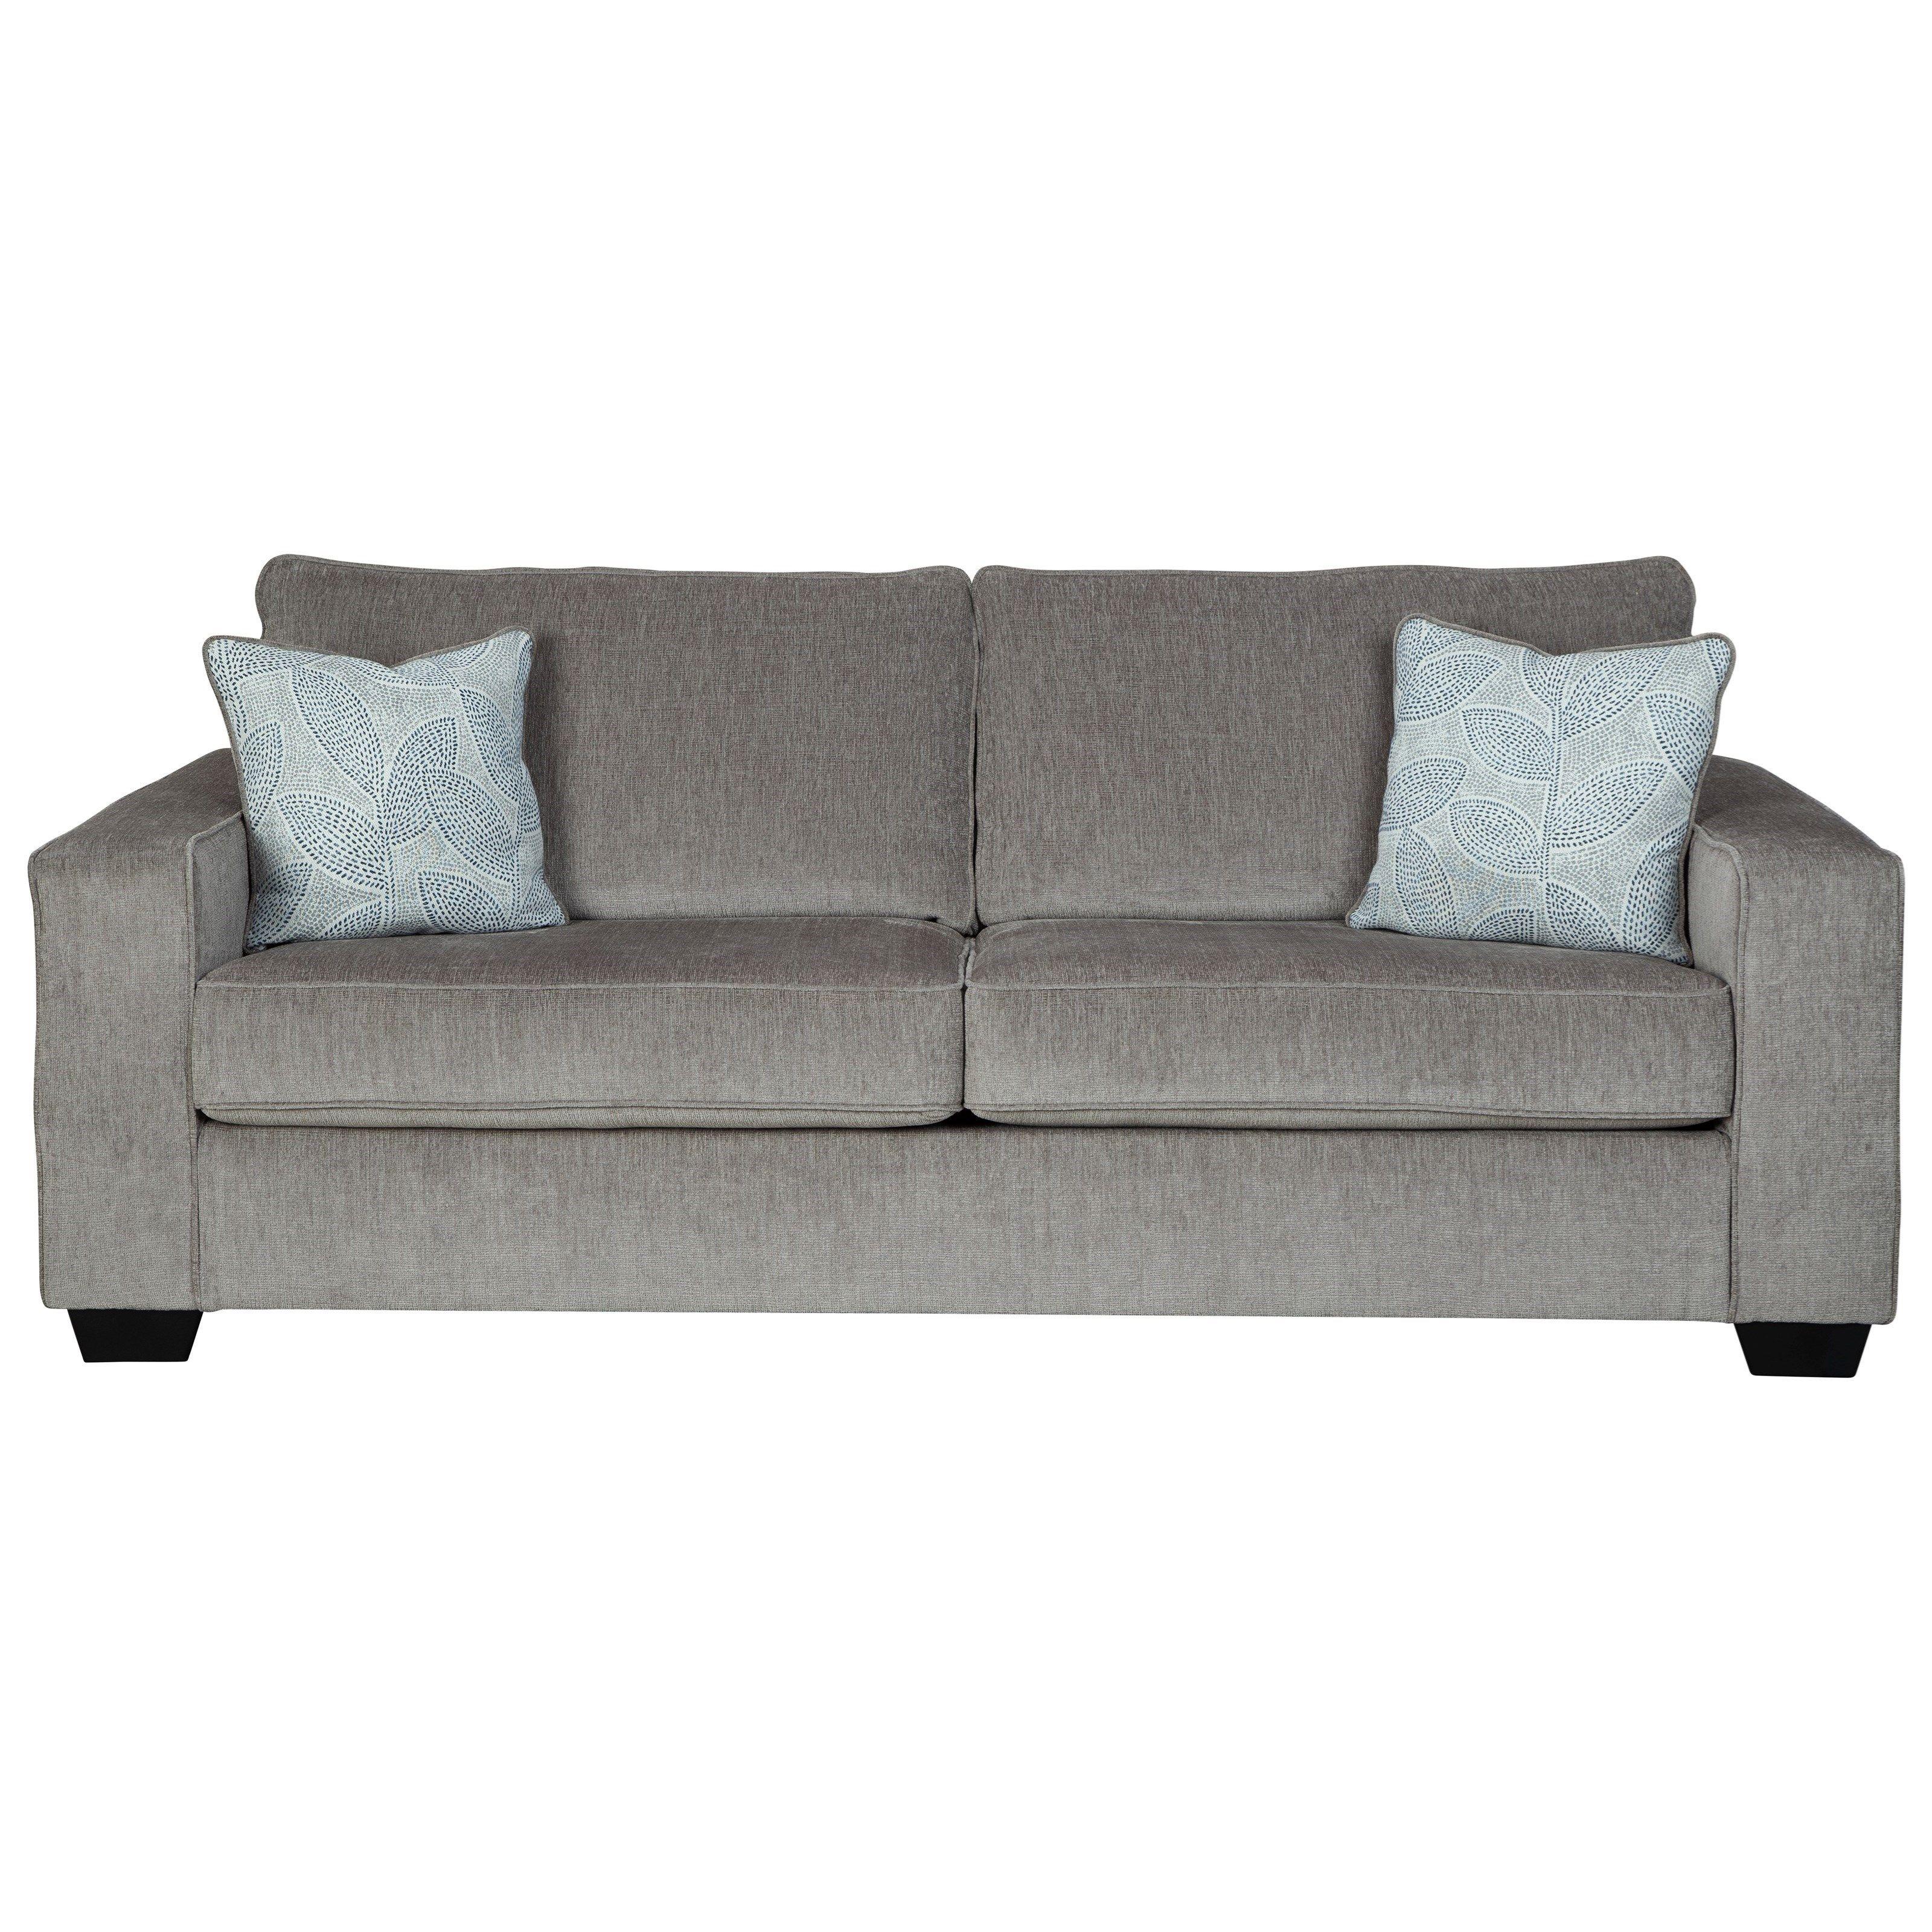 Altari Queen Sofa Sleeper With Memory Foam Mattress By Signature